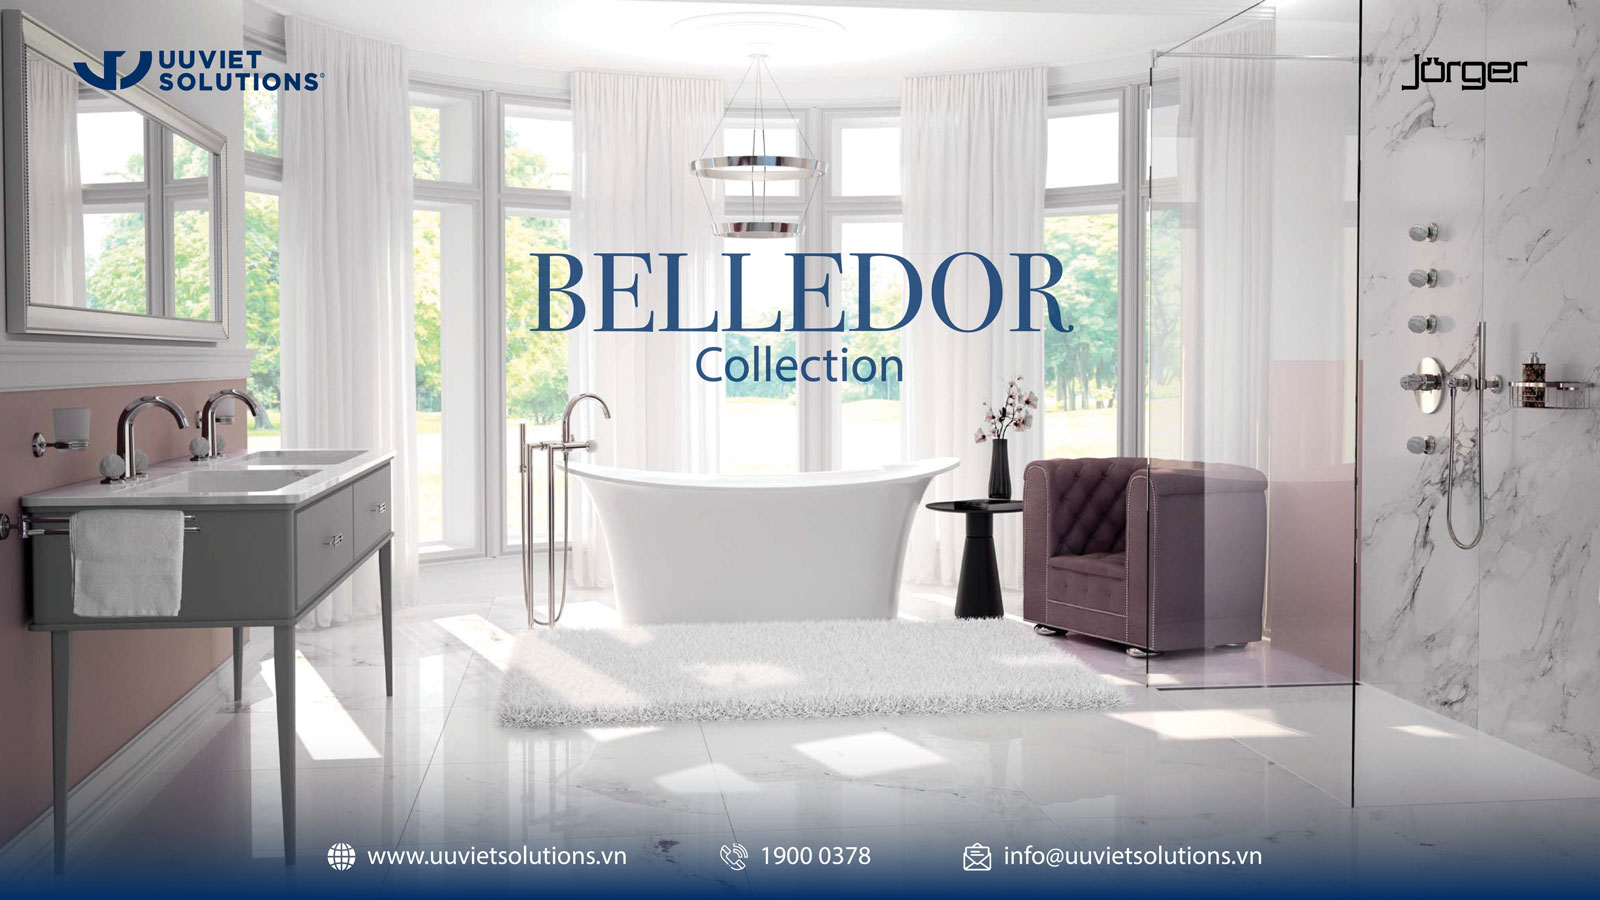 Jorger-belledor-collection